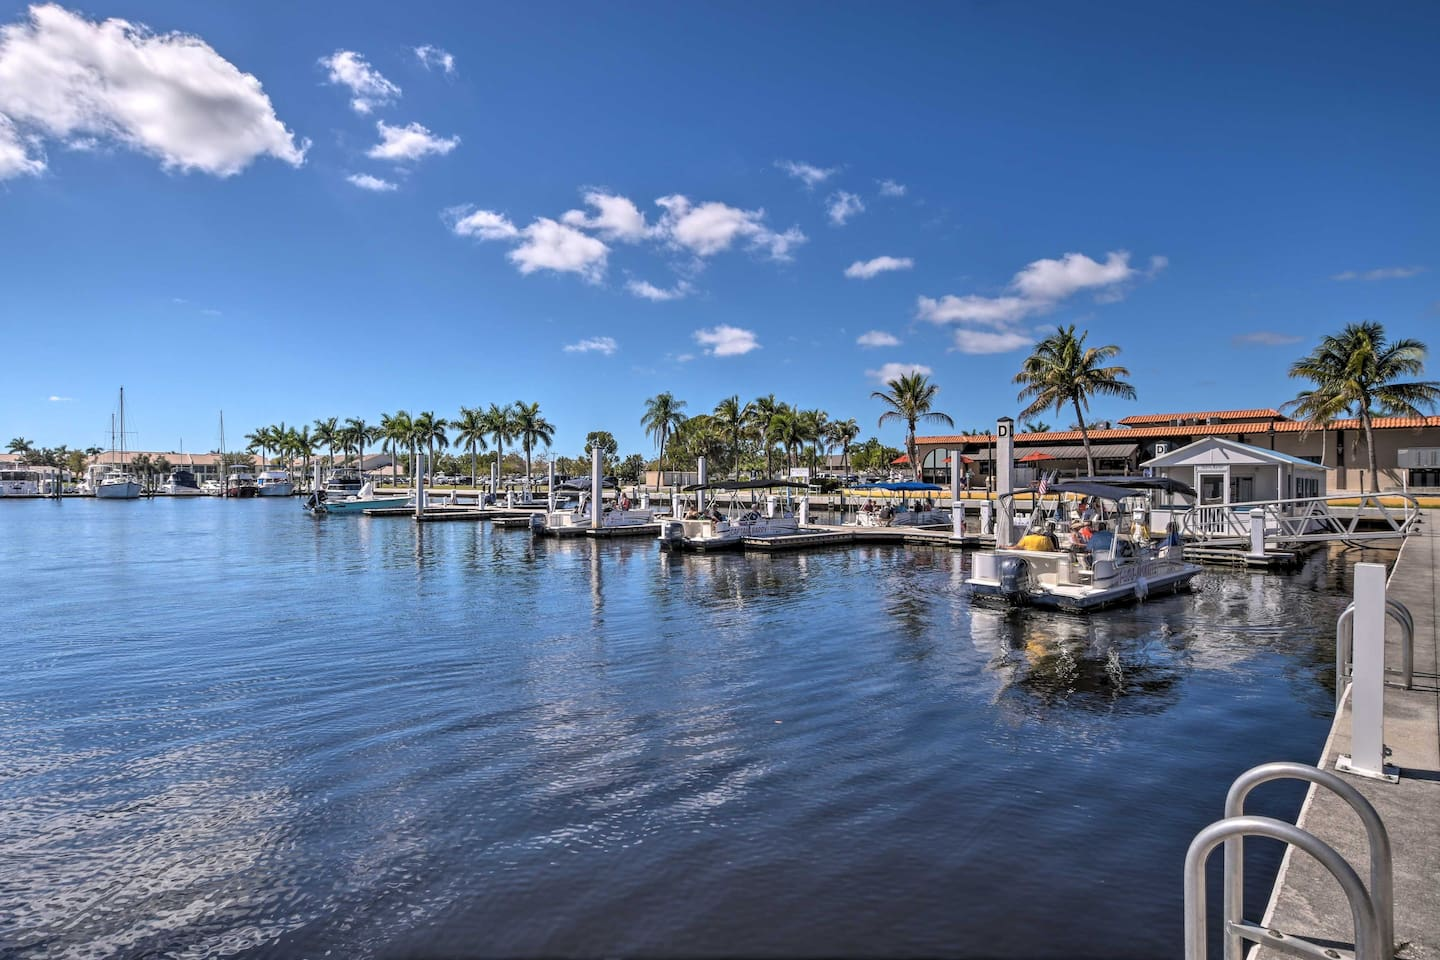 Spend your days on the water when you visit Naples, Florida!